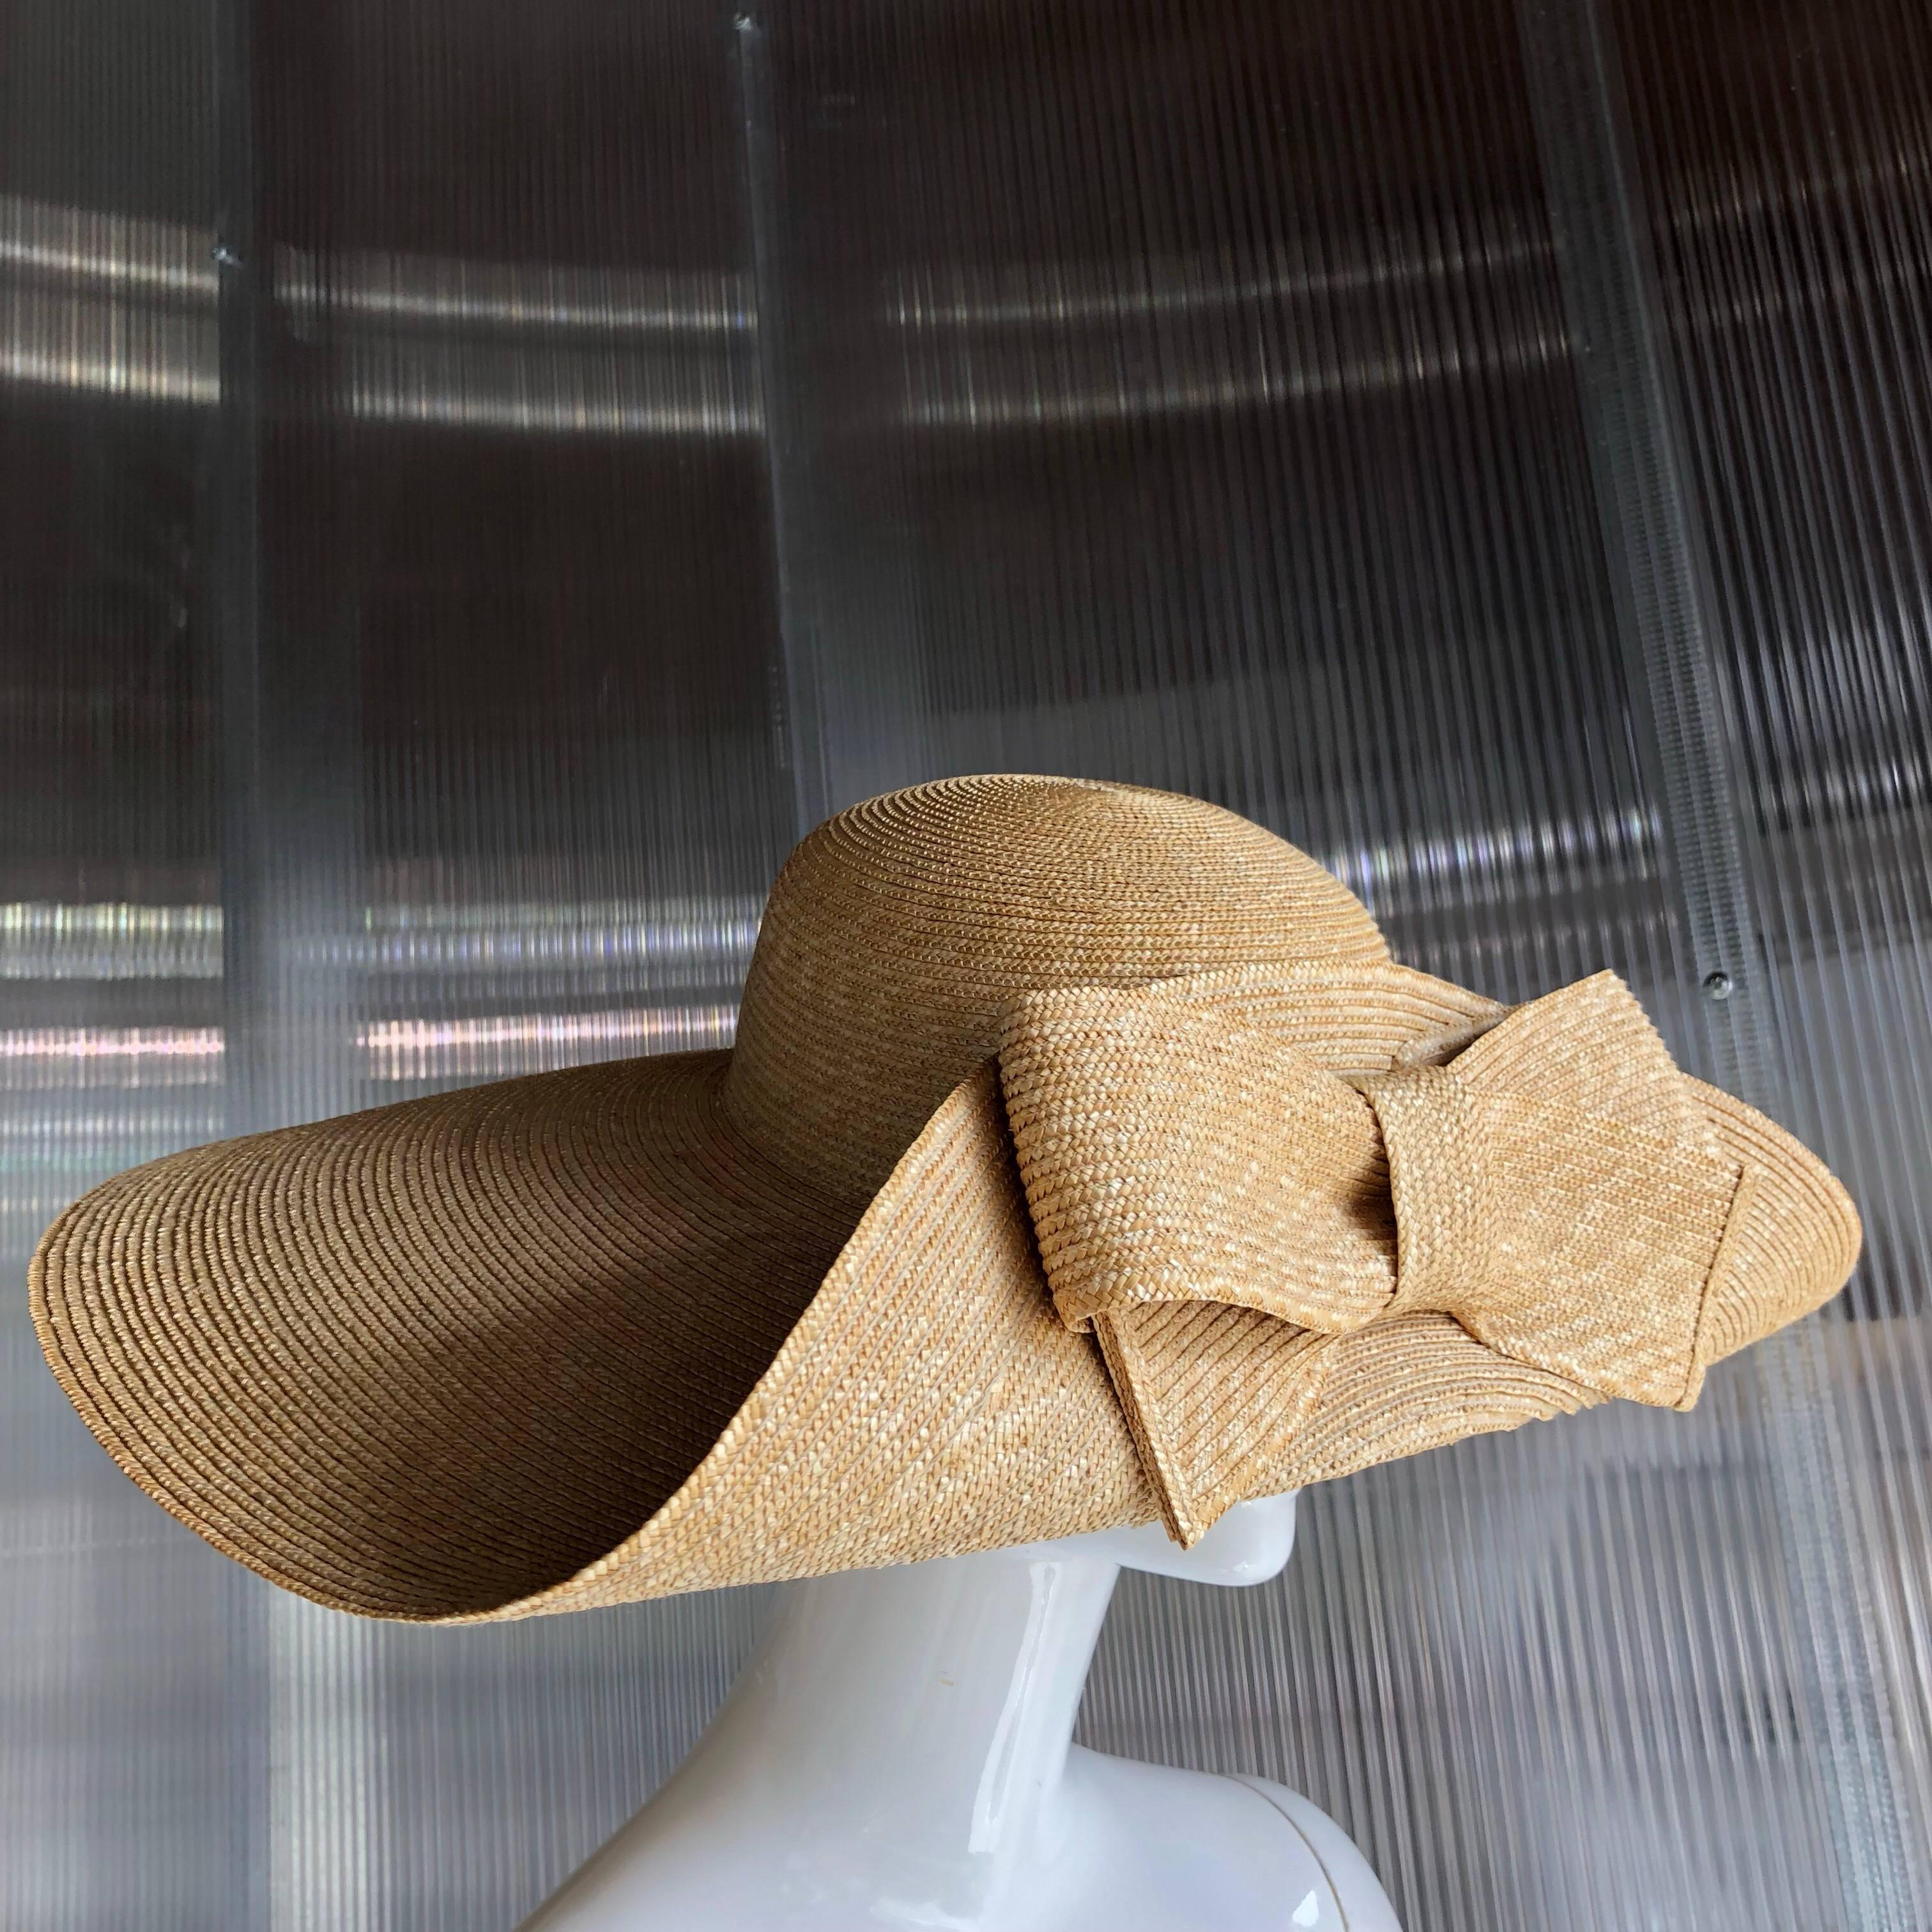 563f07332f2 Helene Berman Wide Folded Brim and Large Bow Natural Straw Hat ...